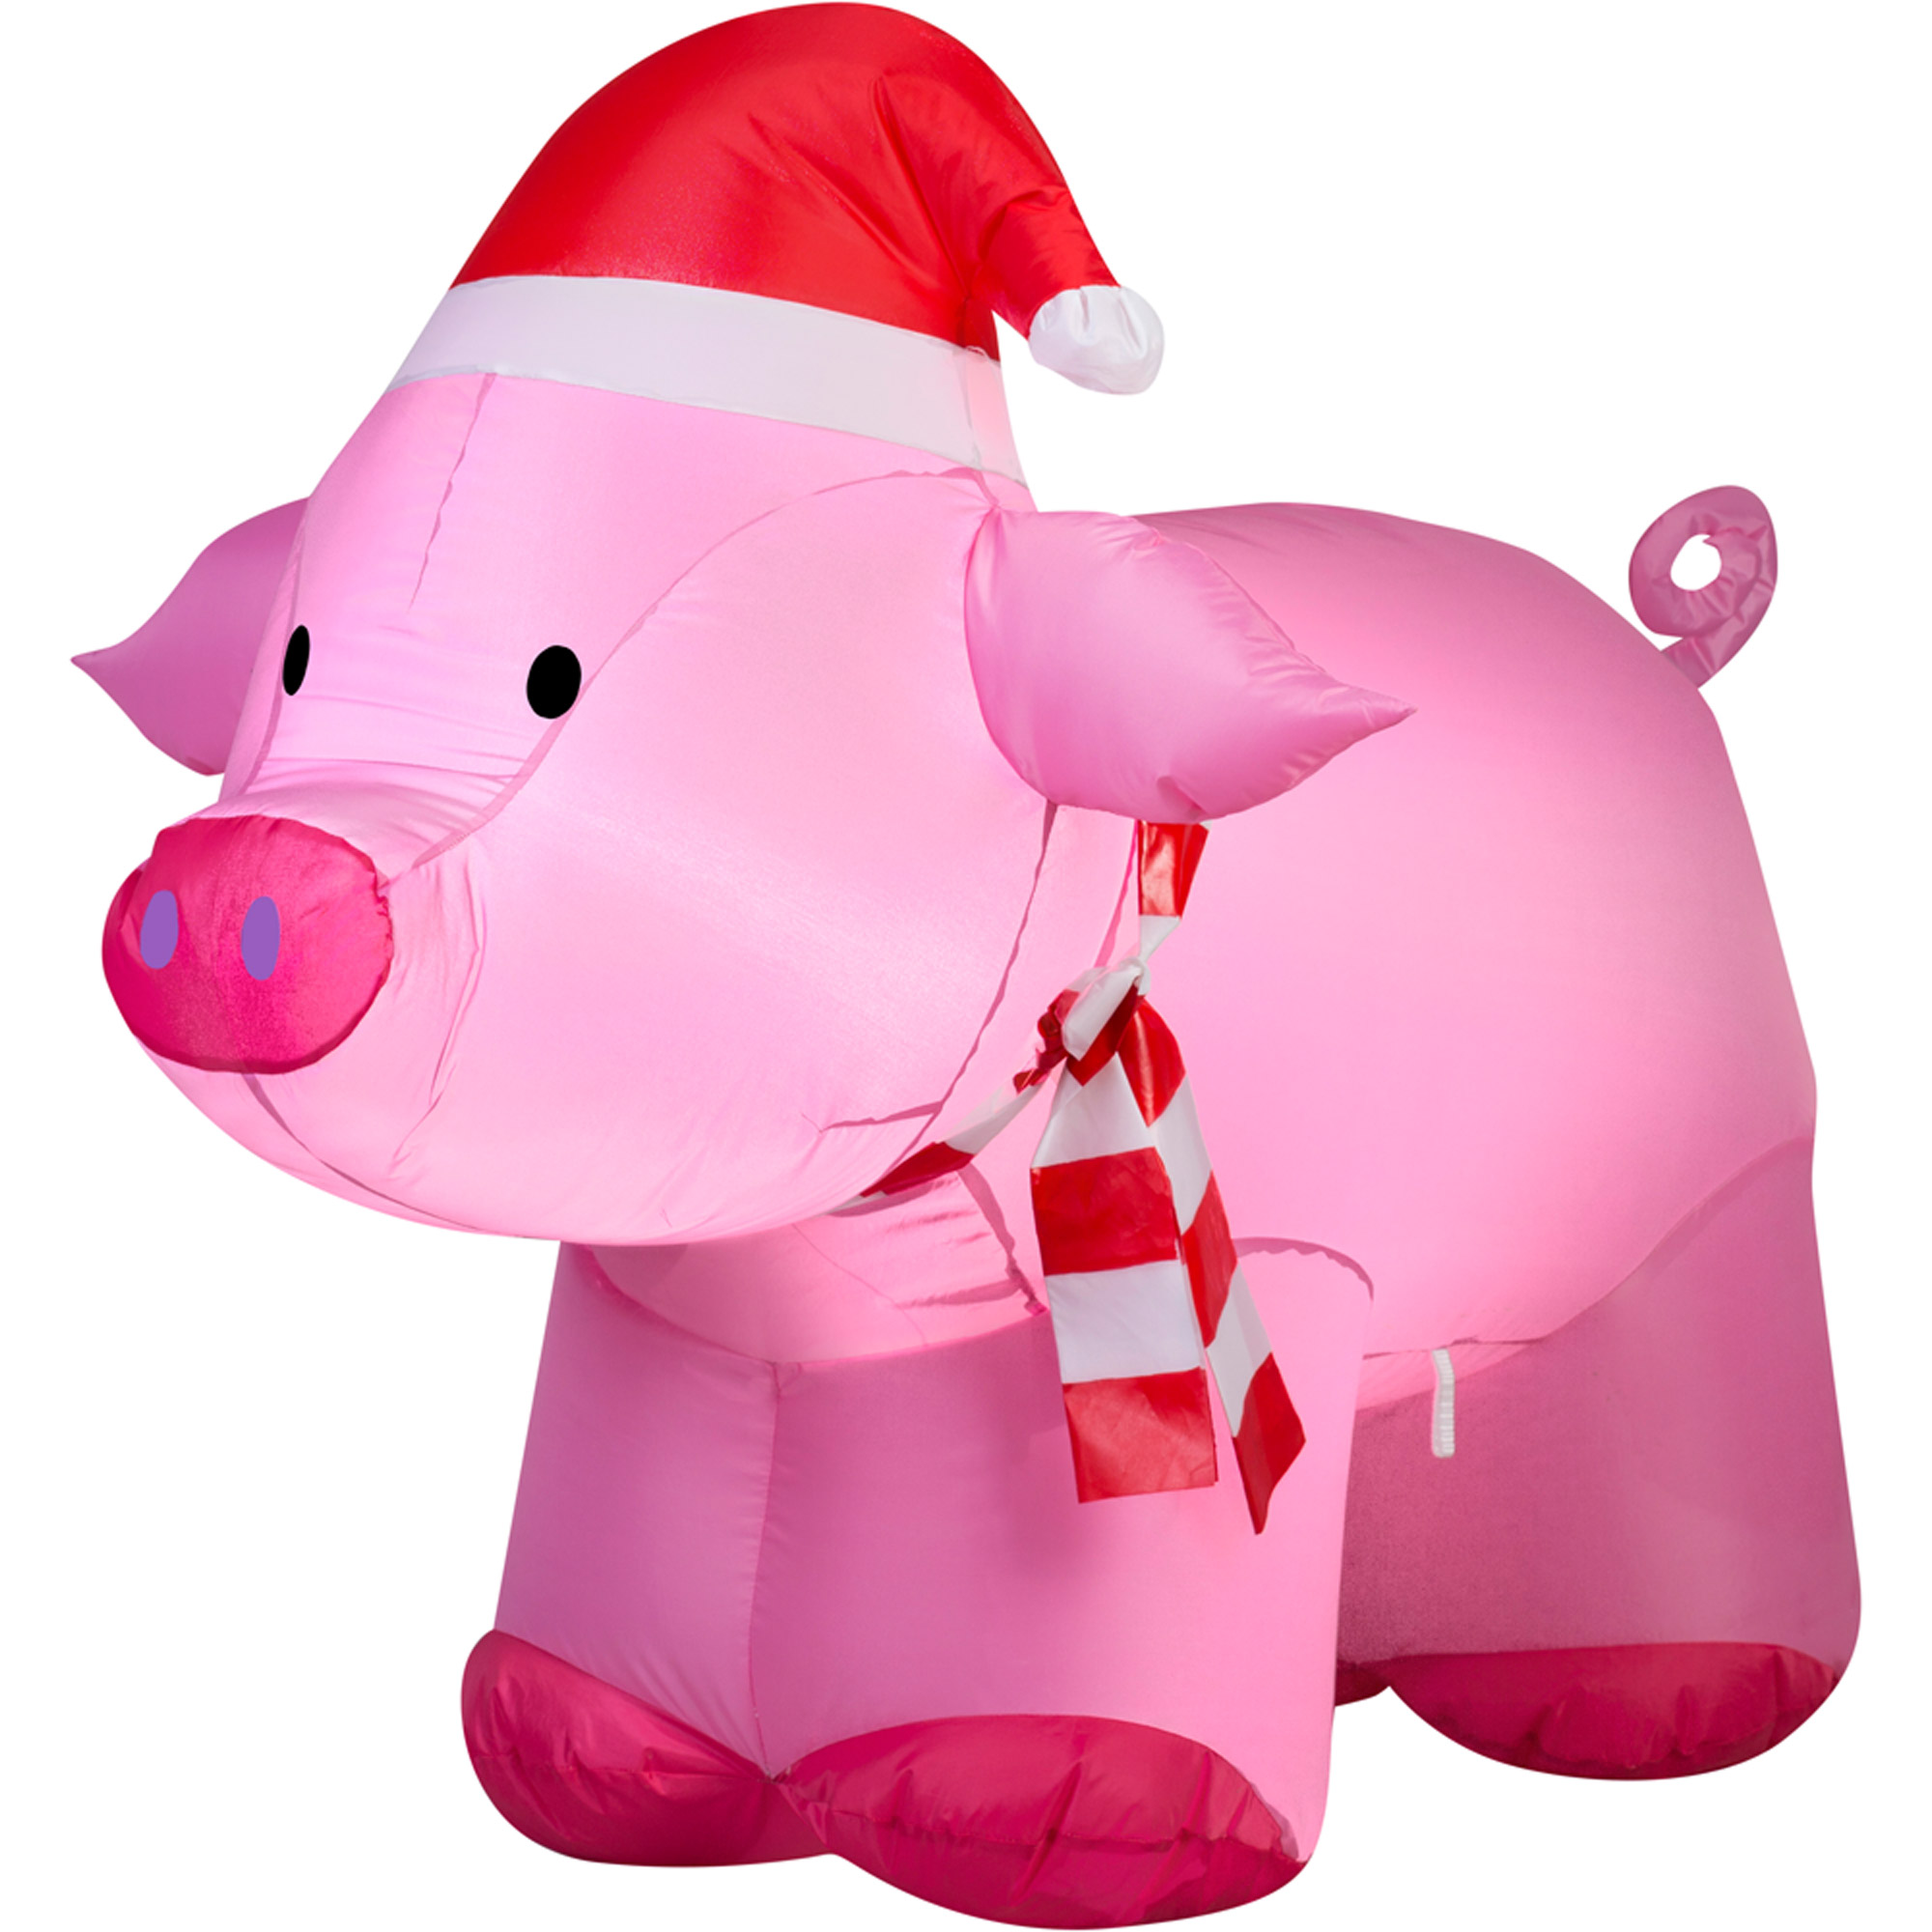 gemmy airblown inflatable 3 pig christmas decoration walmartcom - Inflatable Outdoor Christmas Decorations